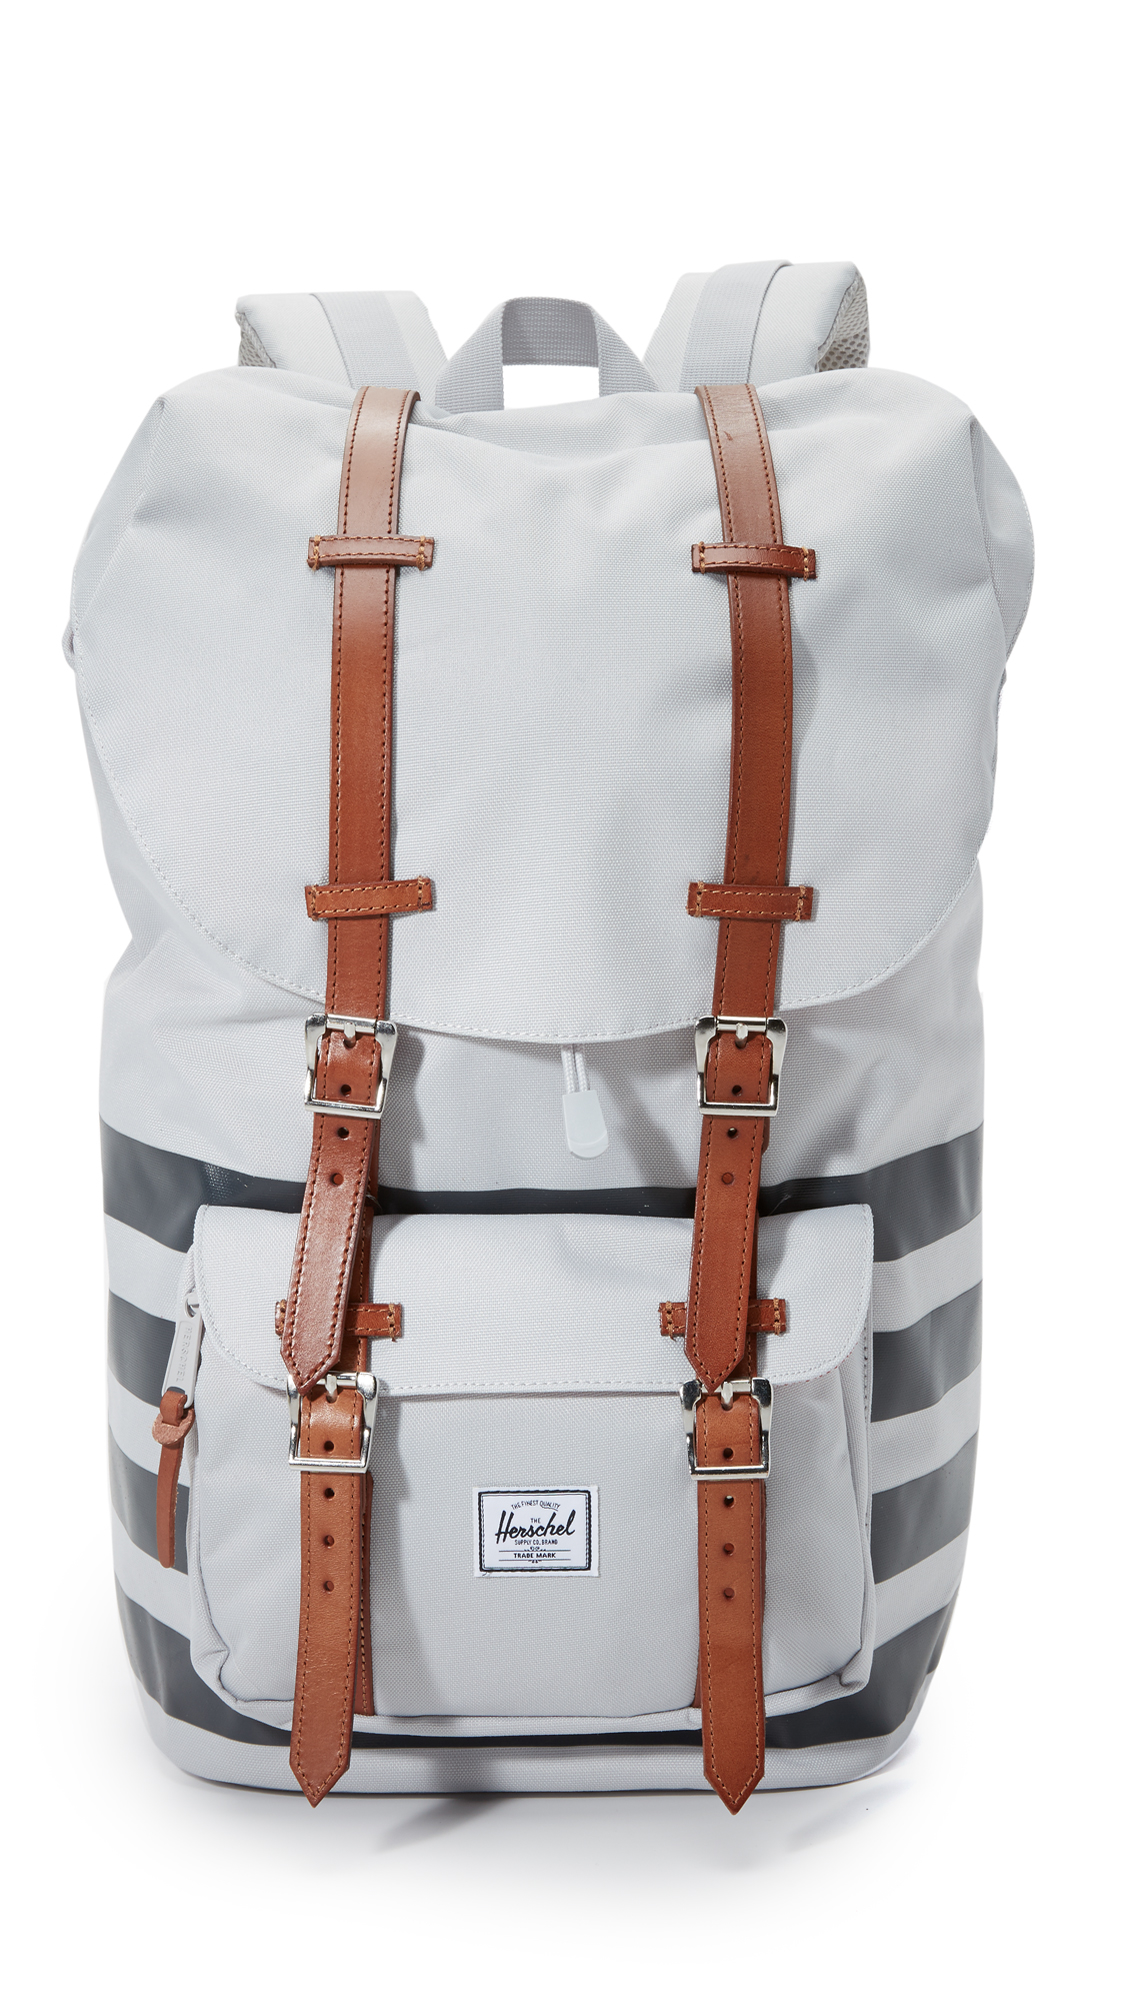 Lyst - Herschel Supply Co. Offset Little America Backpack in White ... 88653d71fe